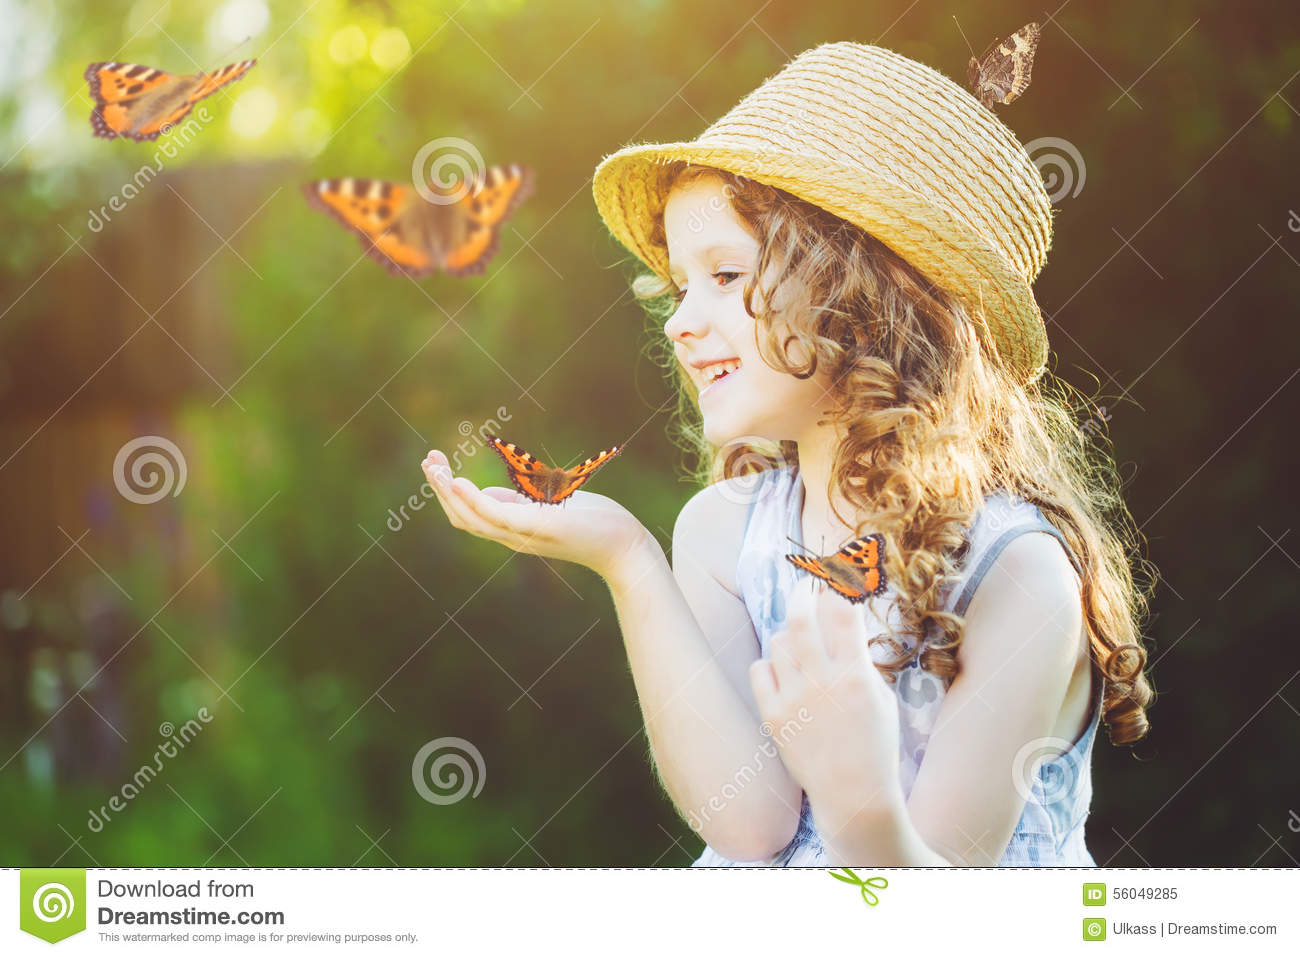 Cute Little Girls Laughing Wallpaper Laughing Little Girl With A Butterfly On His Hand Happy